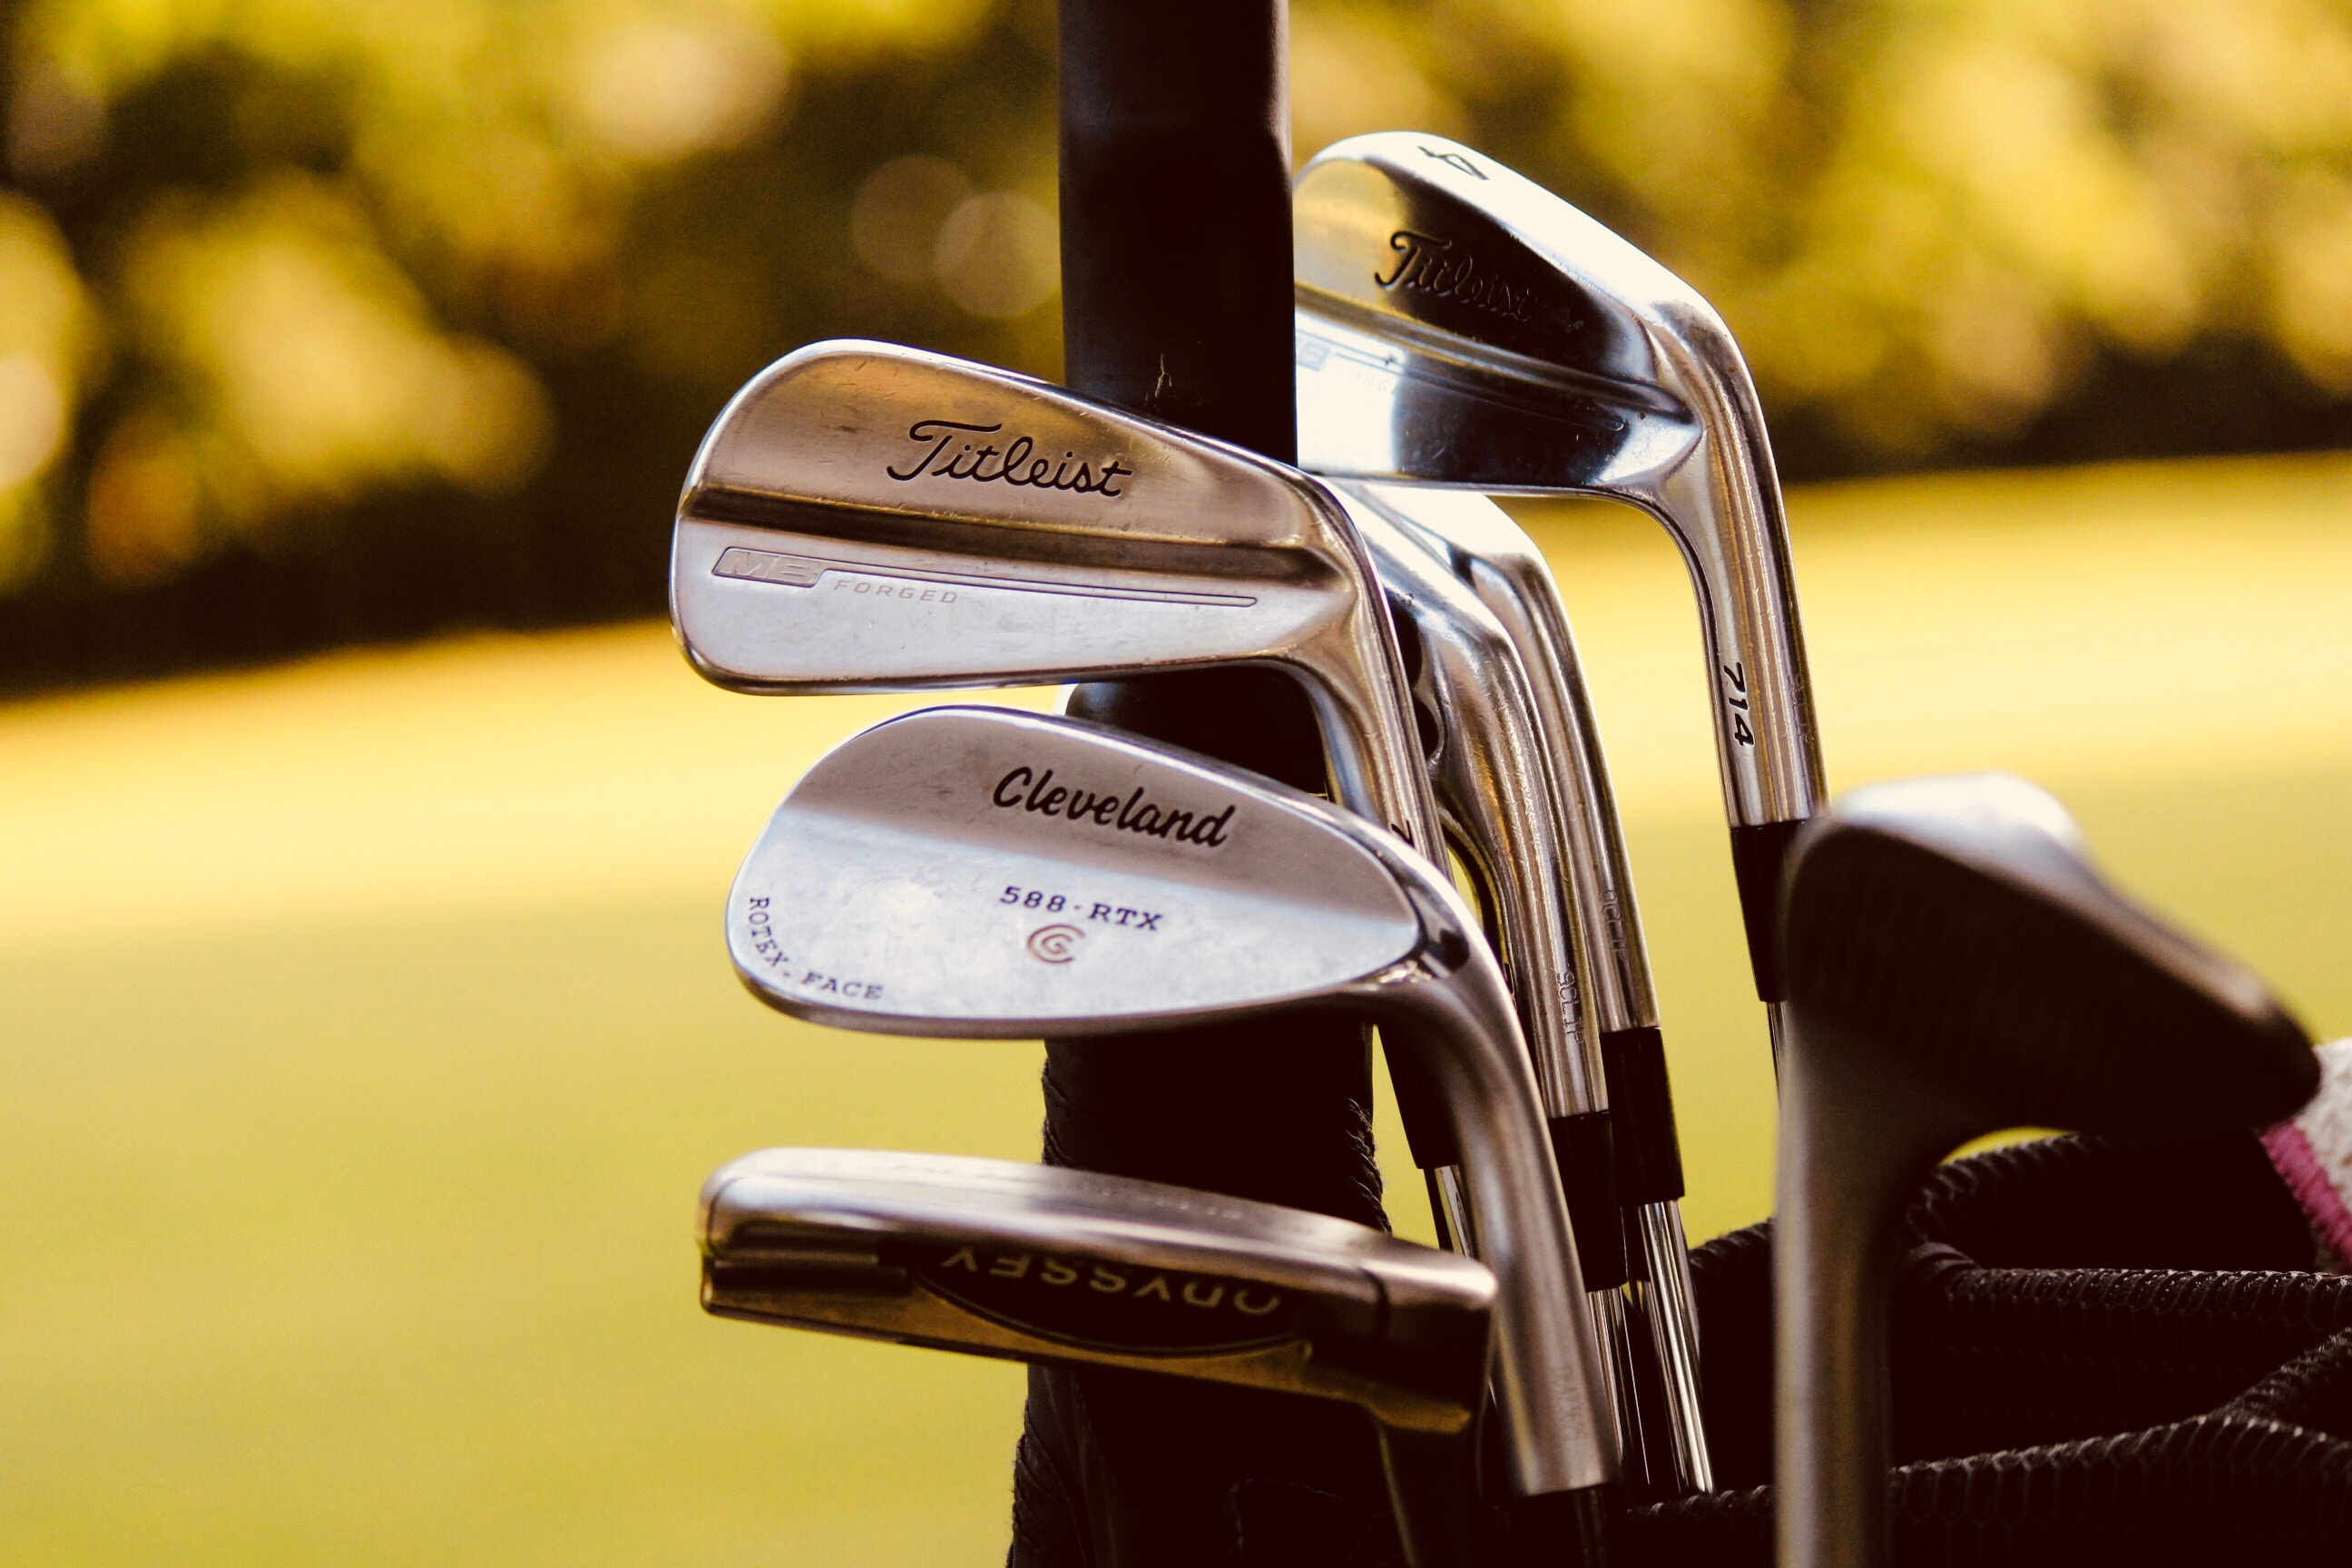 golf clubs to choose from